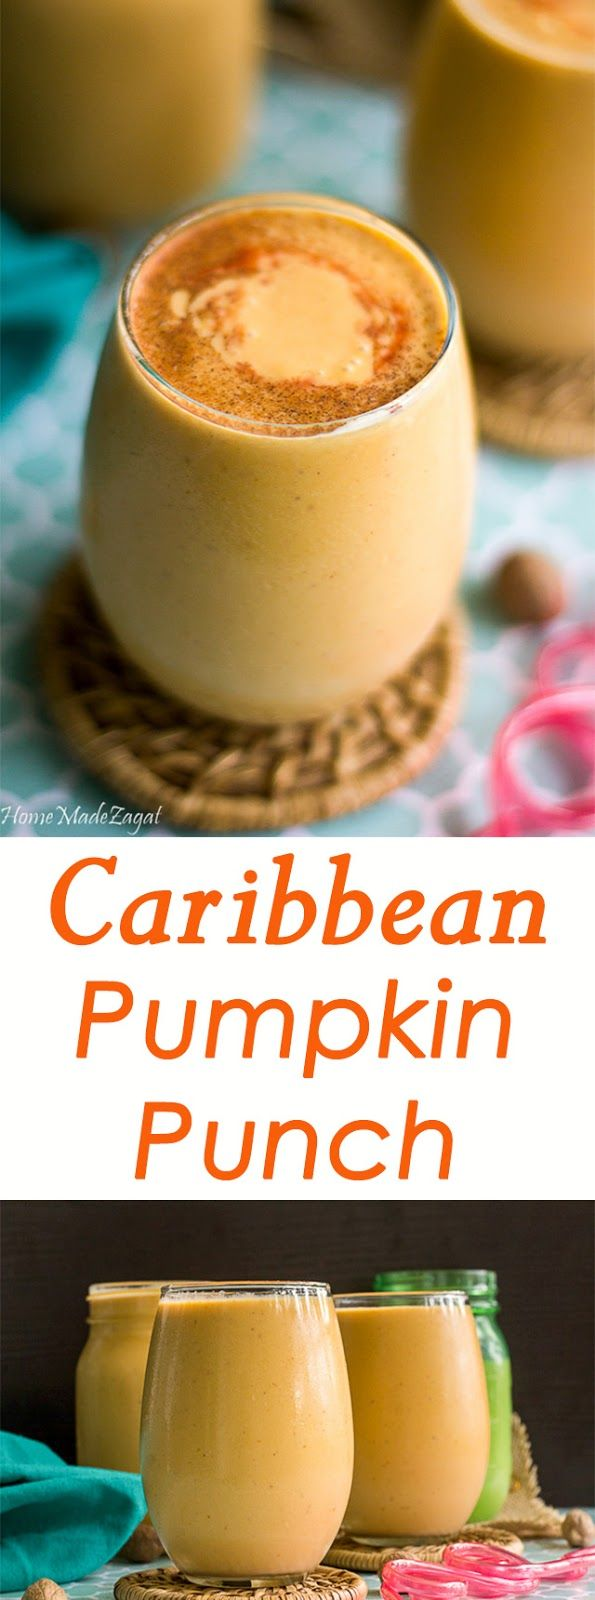 A deliciously refreshing pumpkin drink made with pureed pumpkin and milk. With the addition of Guinness and nutmeg gives this drink an amazing flavor.